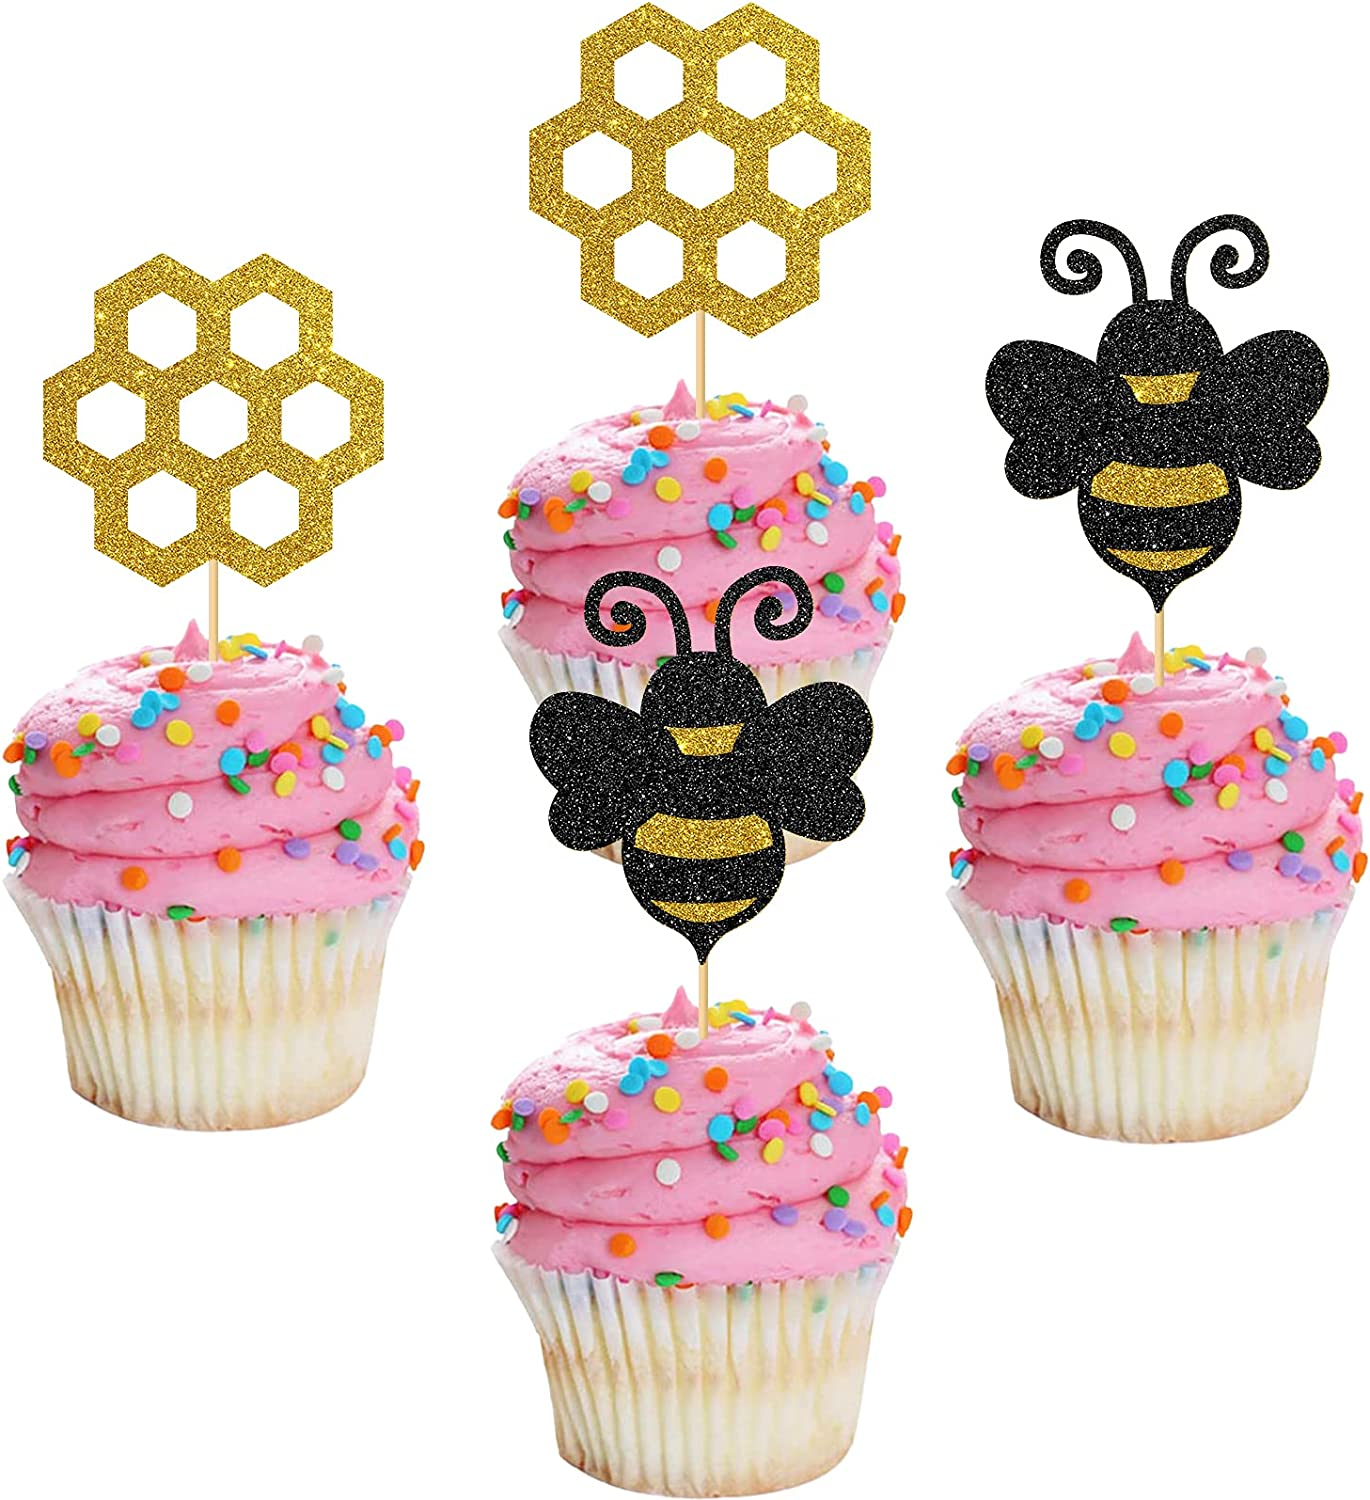 MonMon & Craft 24 Pcs Bumble Bee Cupcake Toppers for Children Birthday / Wedding Party / Sweet Cake Decor / Bee Theme Gender Reveal Party Cupcake Decorations / Black Gold Glitter Honeycomb Cupcake Toppers